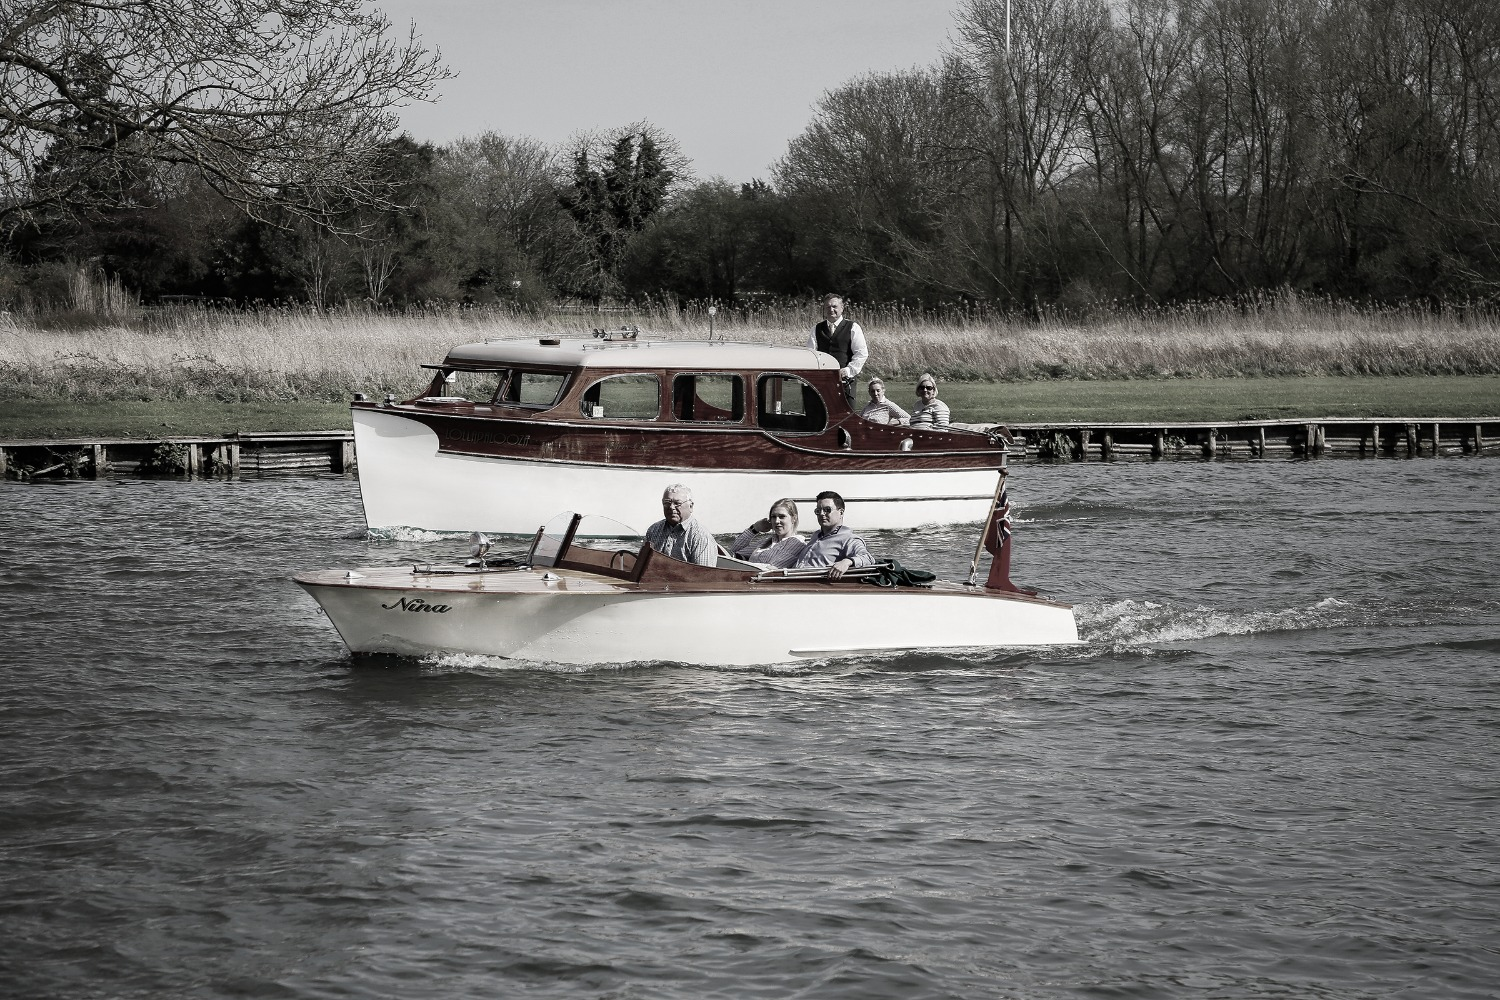 Classic Vintage Thames boat trips